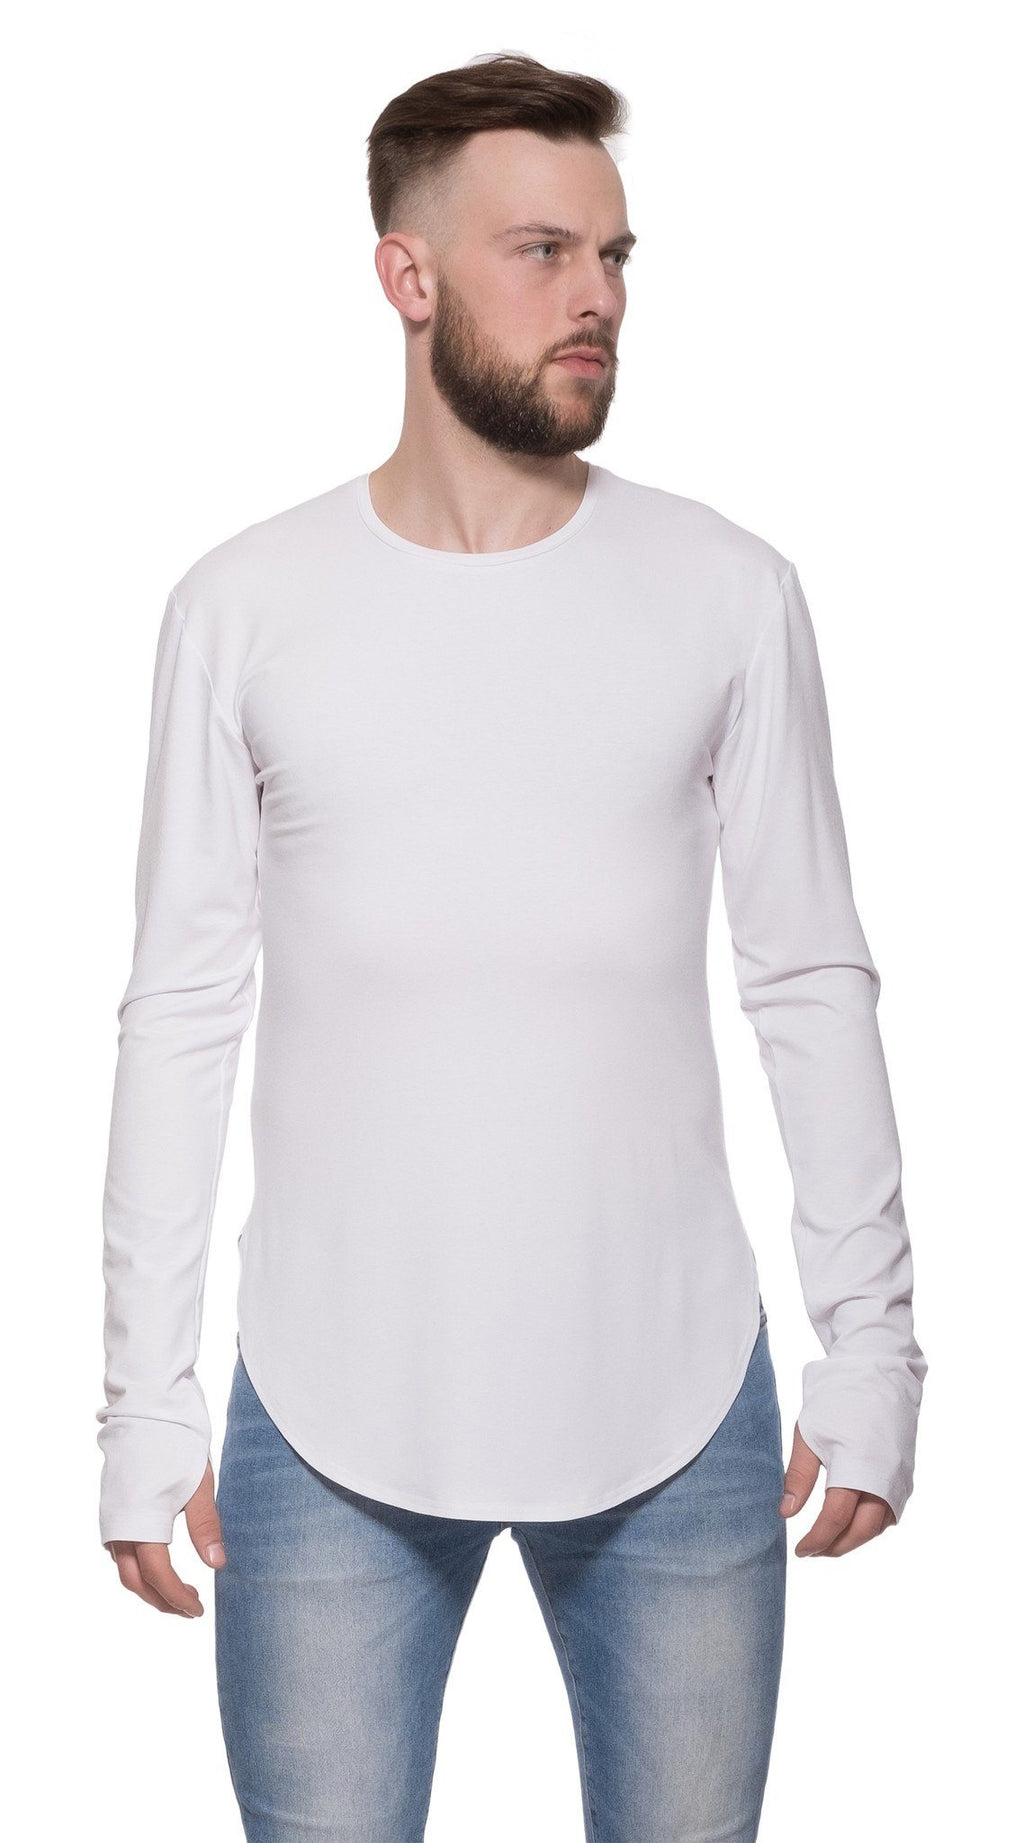 TheG viscose handmade designer under long tee white